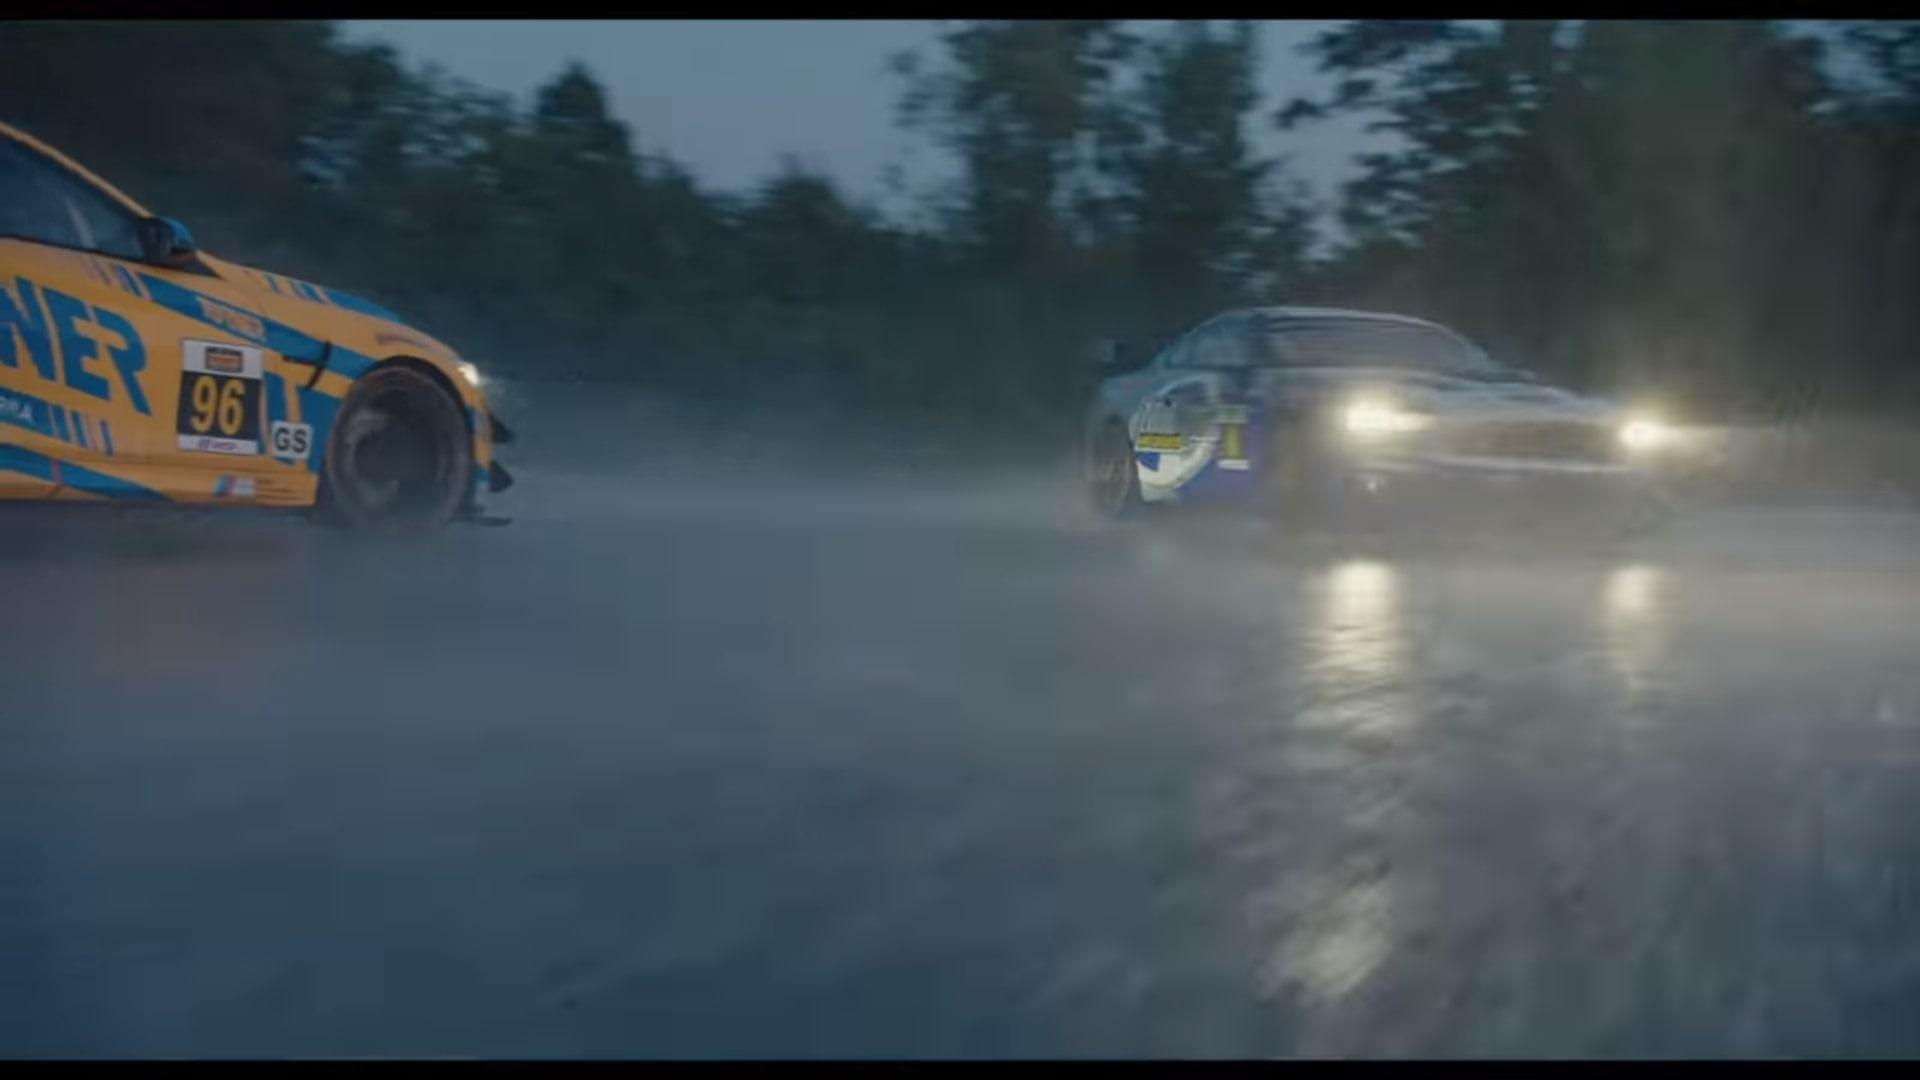 'The Art of Racing in the Rain' trailer